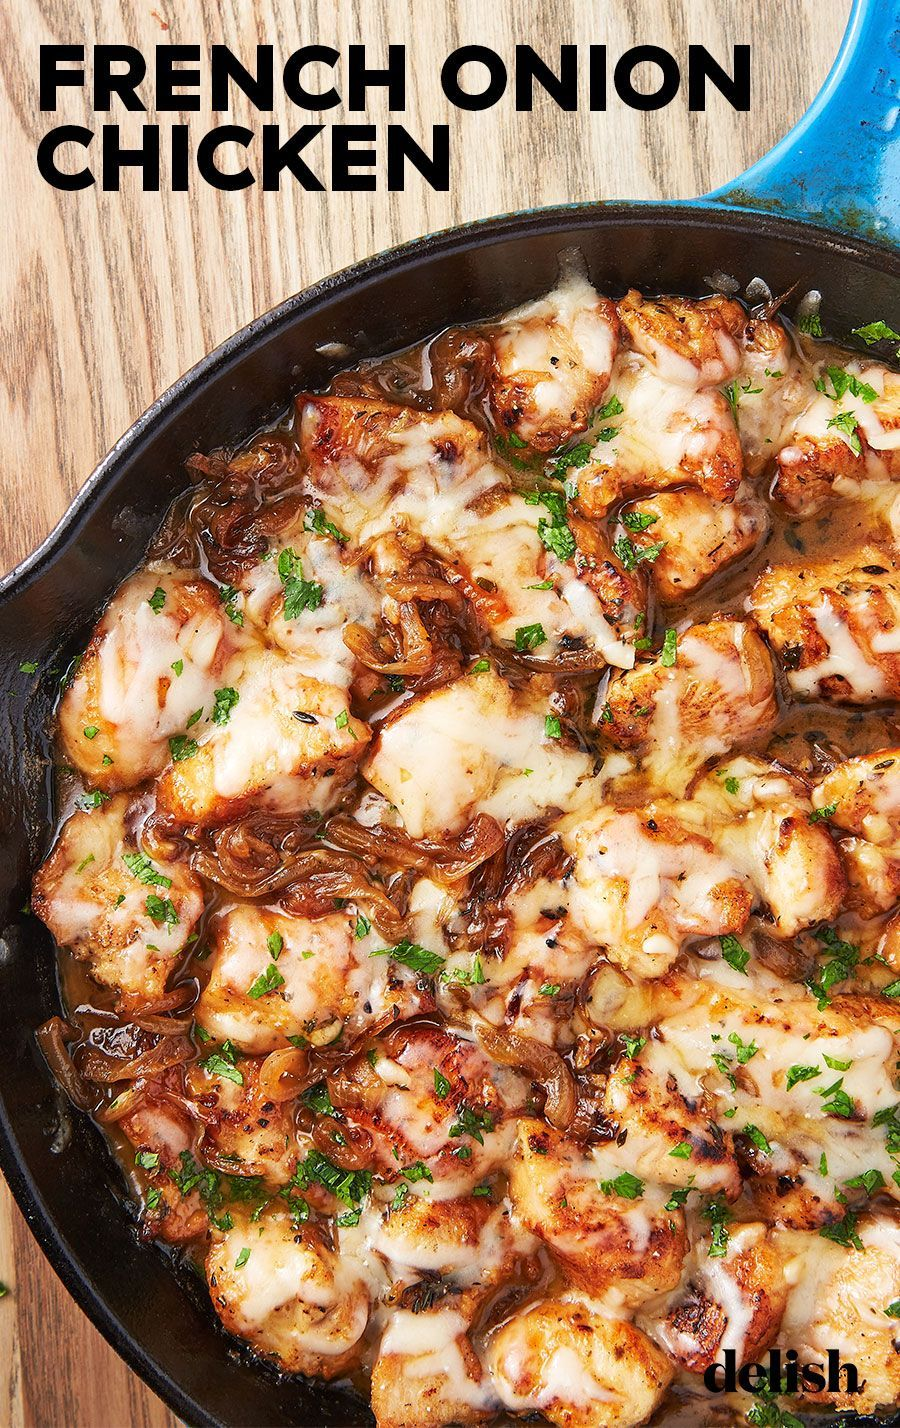 Love french onion soup? You need to try this skillet dinner. Get the recipe from Delish.com. #chicken #dinner #recipe #skillet #chicken #french #onion #recipes #dinnerrecipes